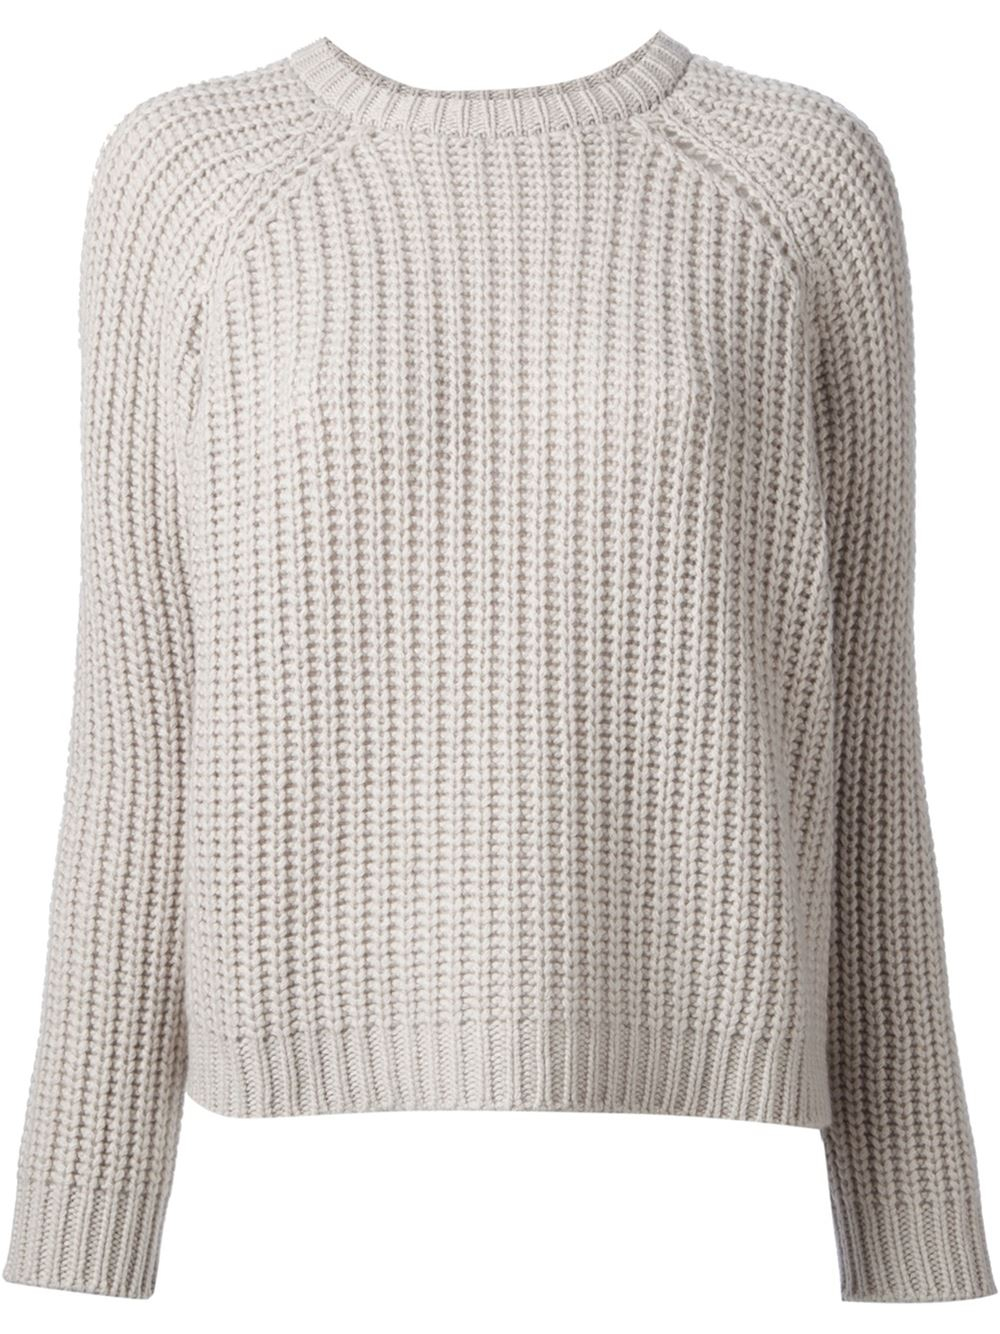 Brunello cucinelli Thick Knit Sweater in Gray | Lyst